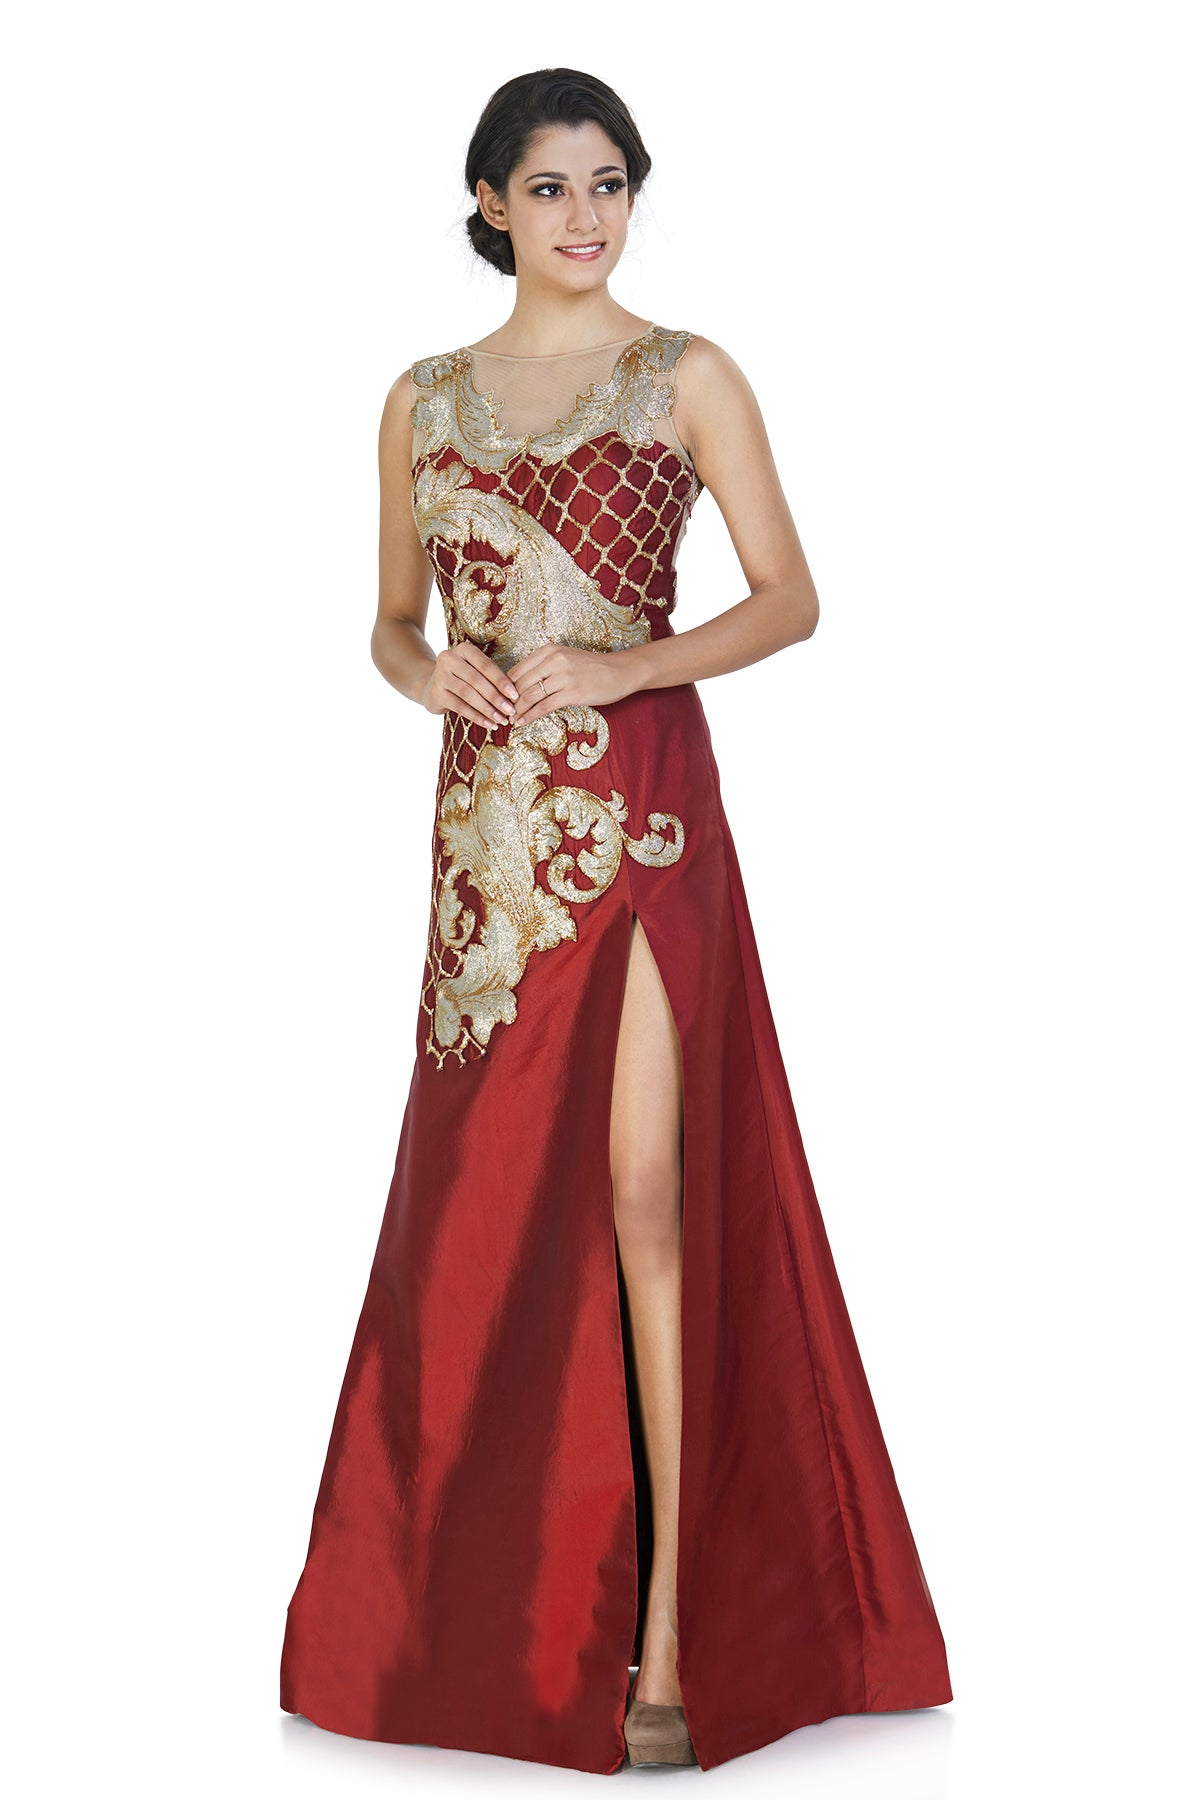 Raise the temperature thigh high with this seductive two-tone silk gown in striking maroon! Its rich kardana embroidery keeps things opulent and all set for your best friend's wedding day.